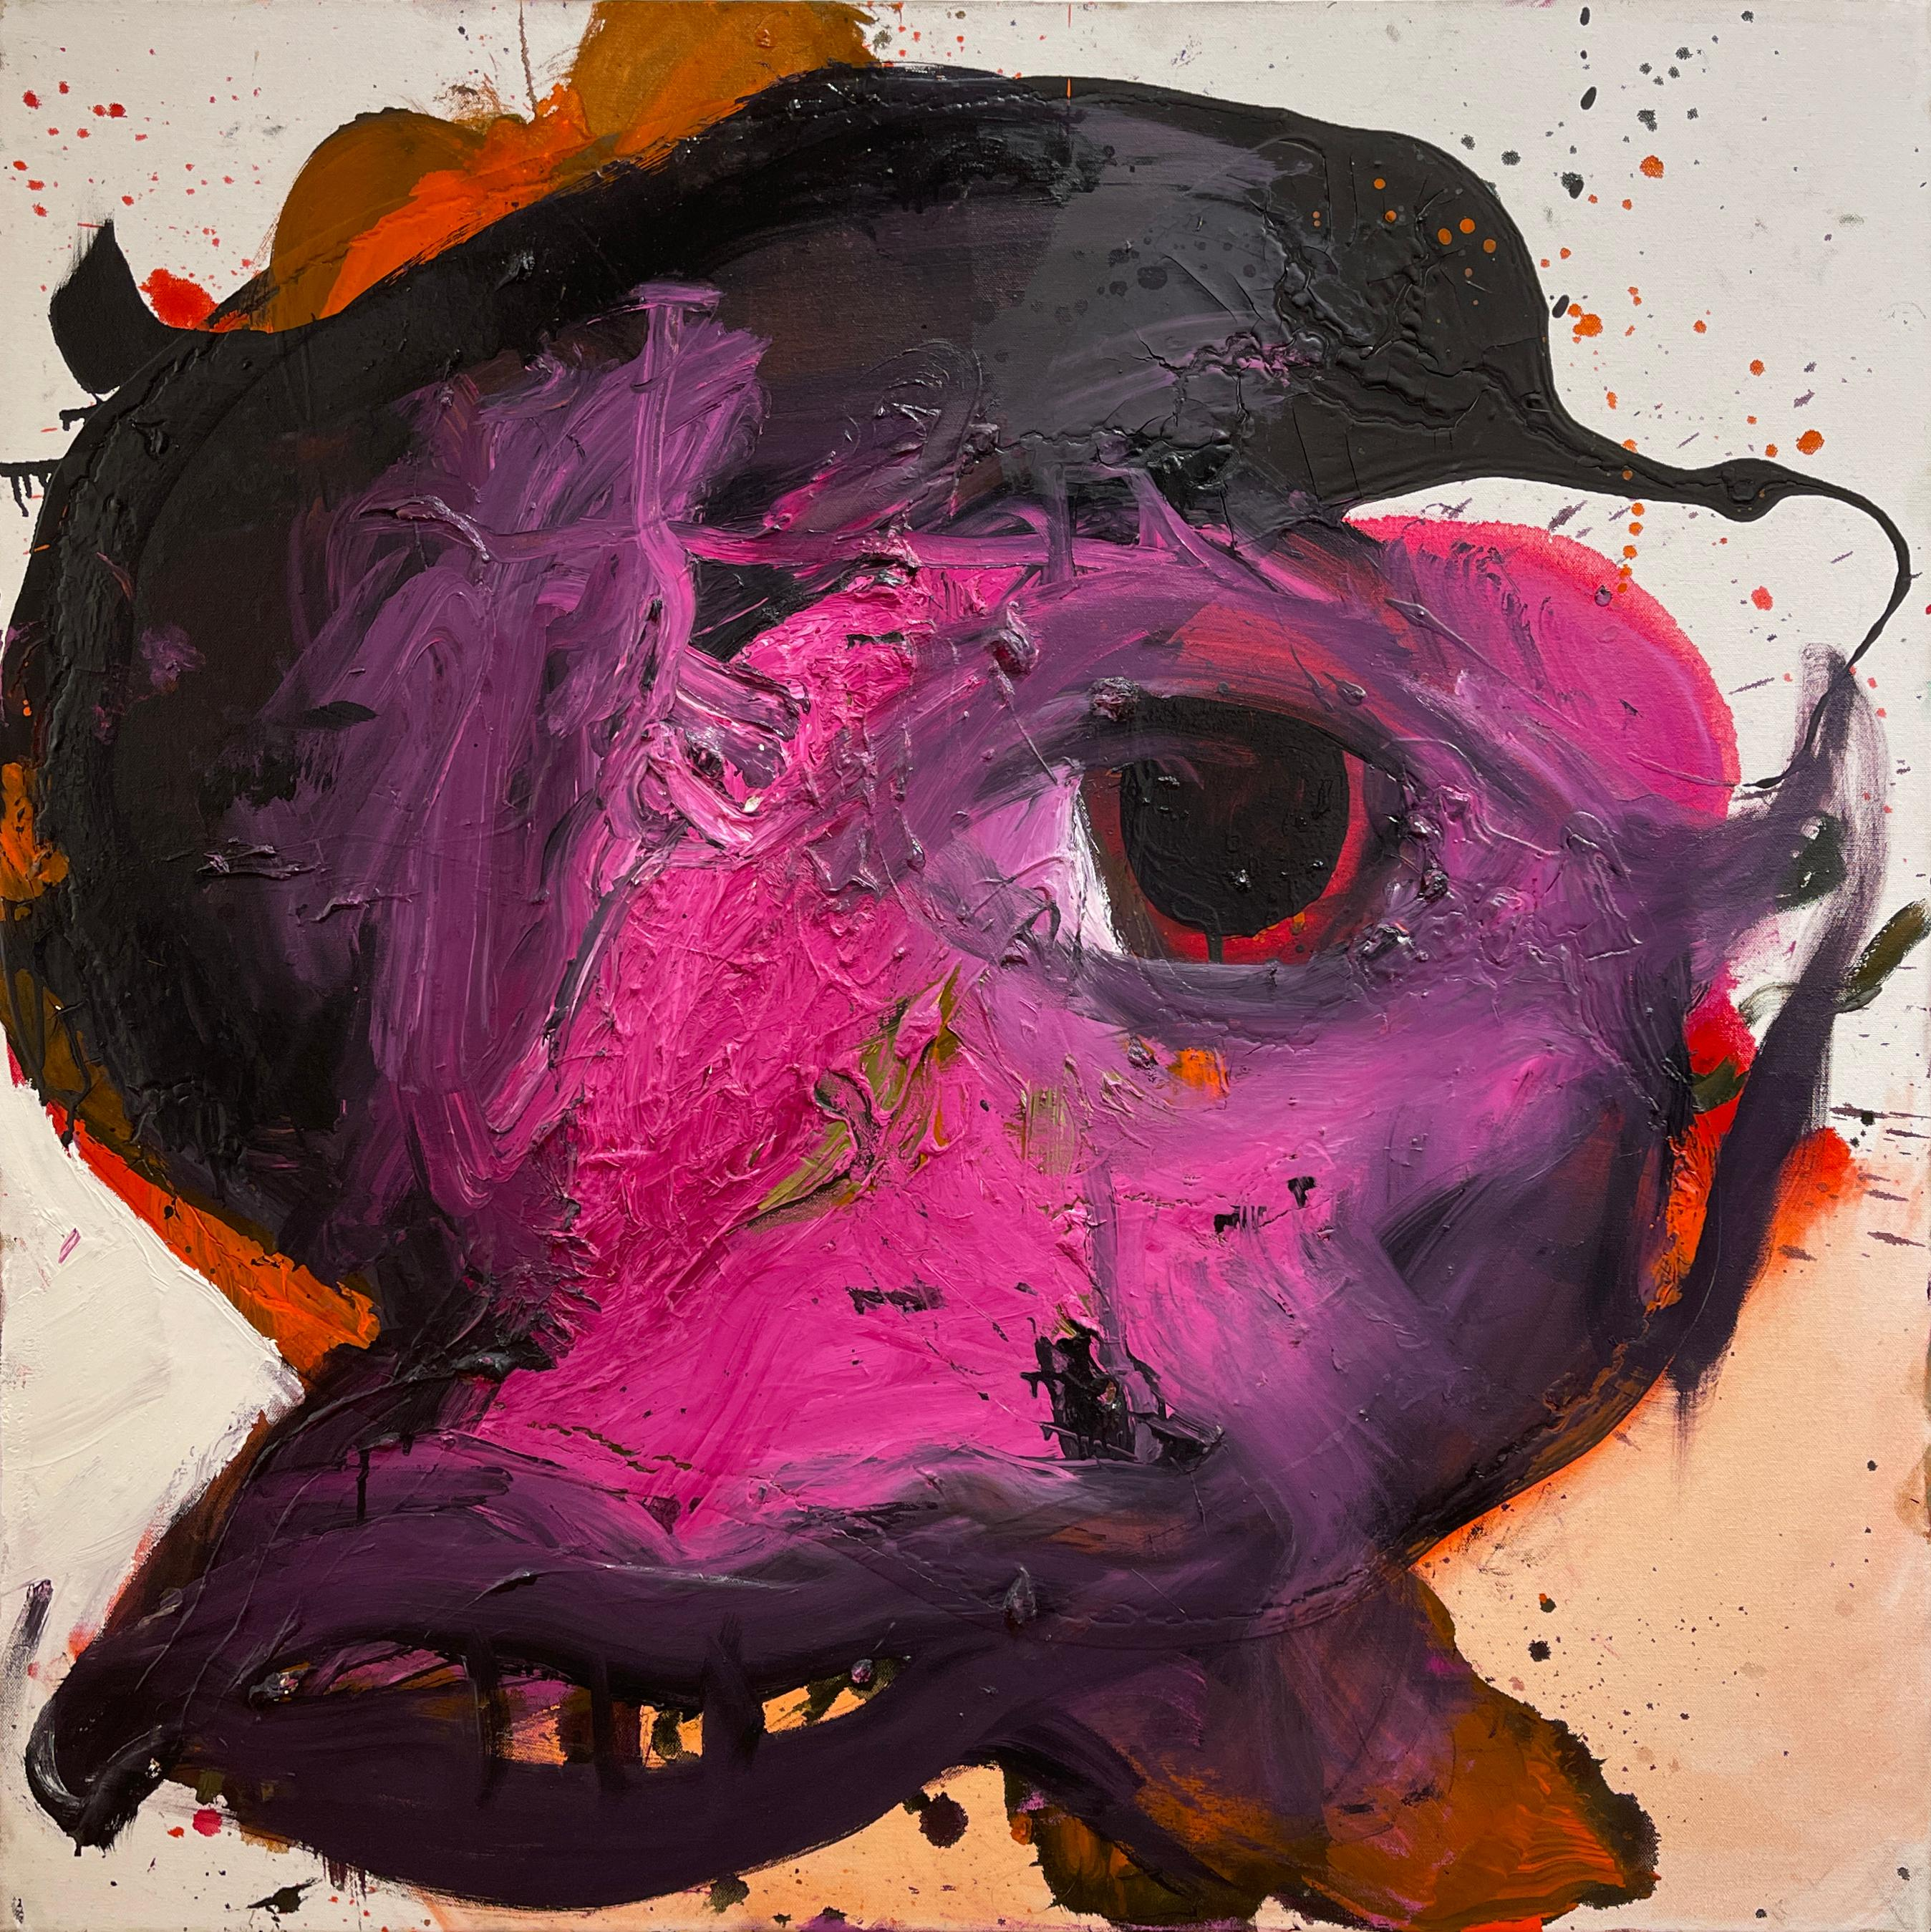 The Pink Musketeer, Black Abstract Figure with Bright Fuchsia, Red, and Orange